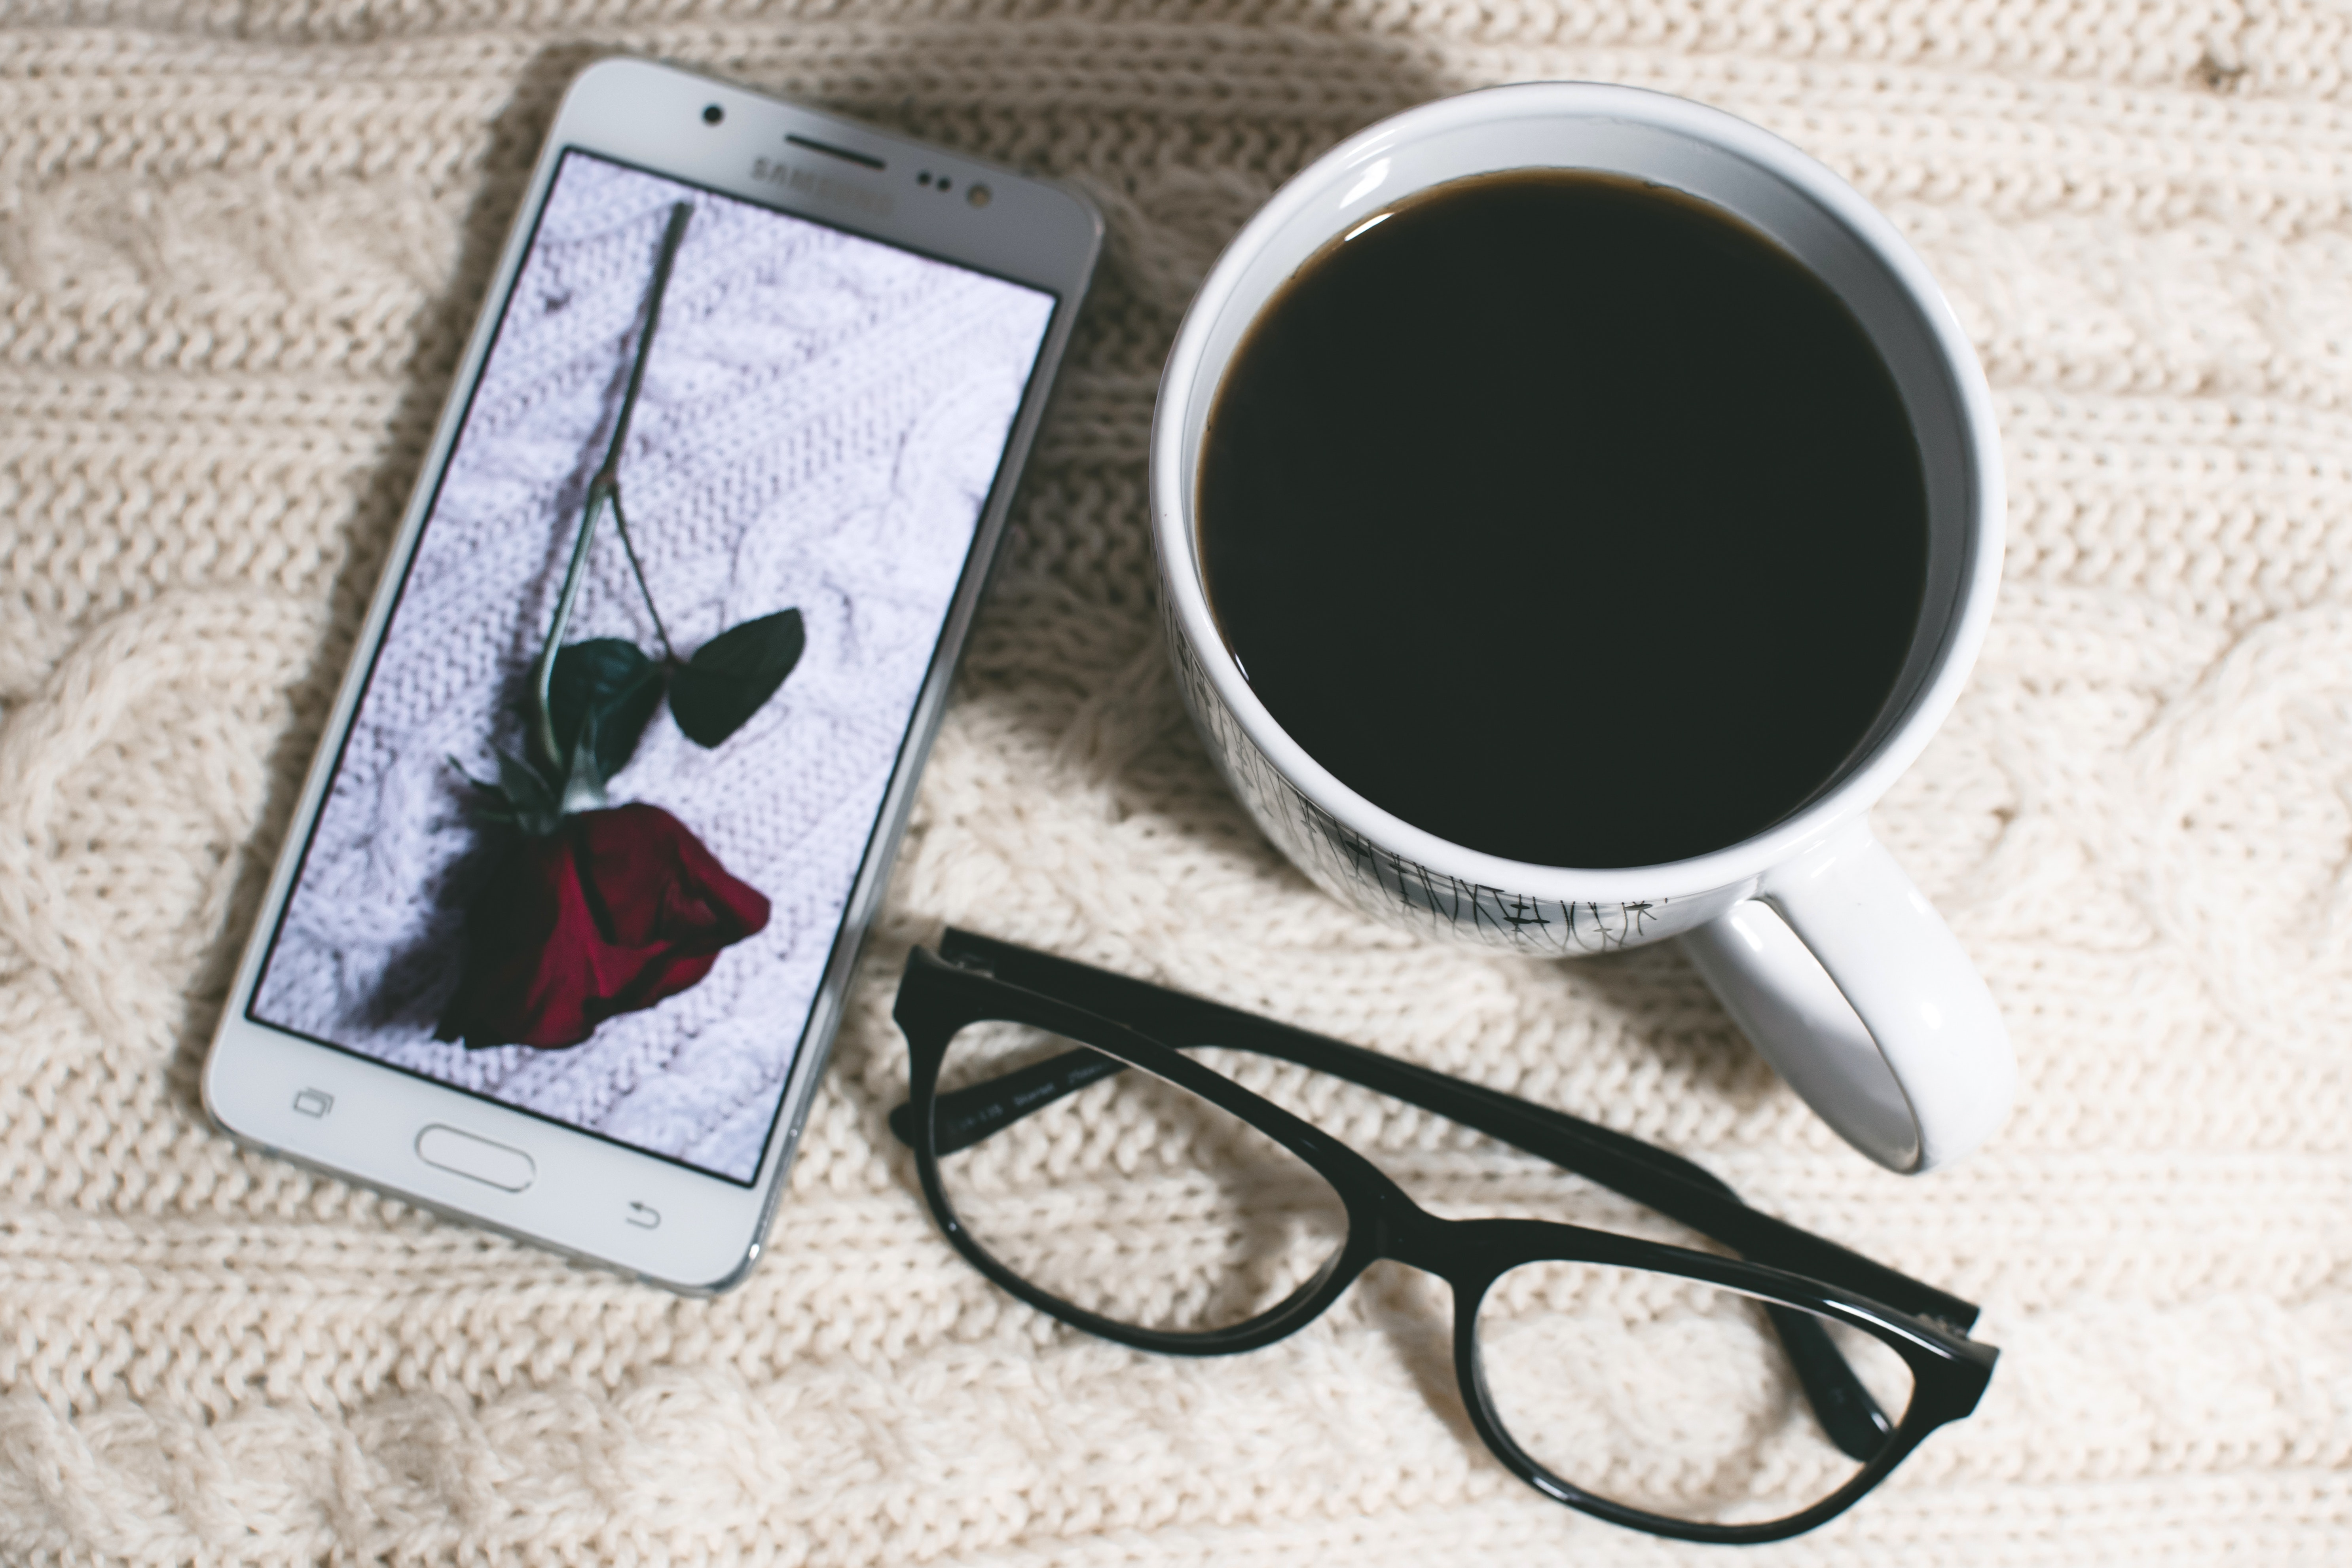 Phone near mug and eyeglasses on table photo